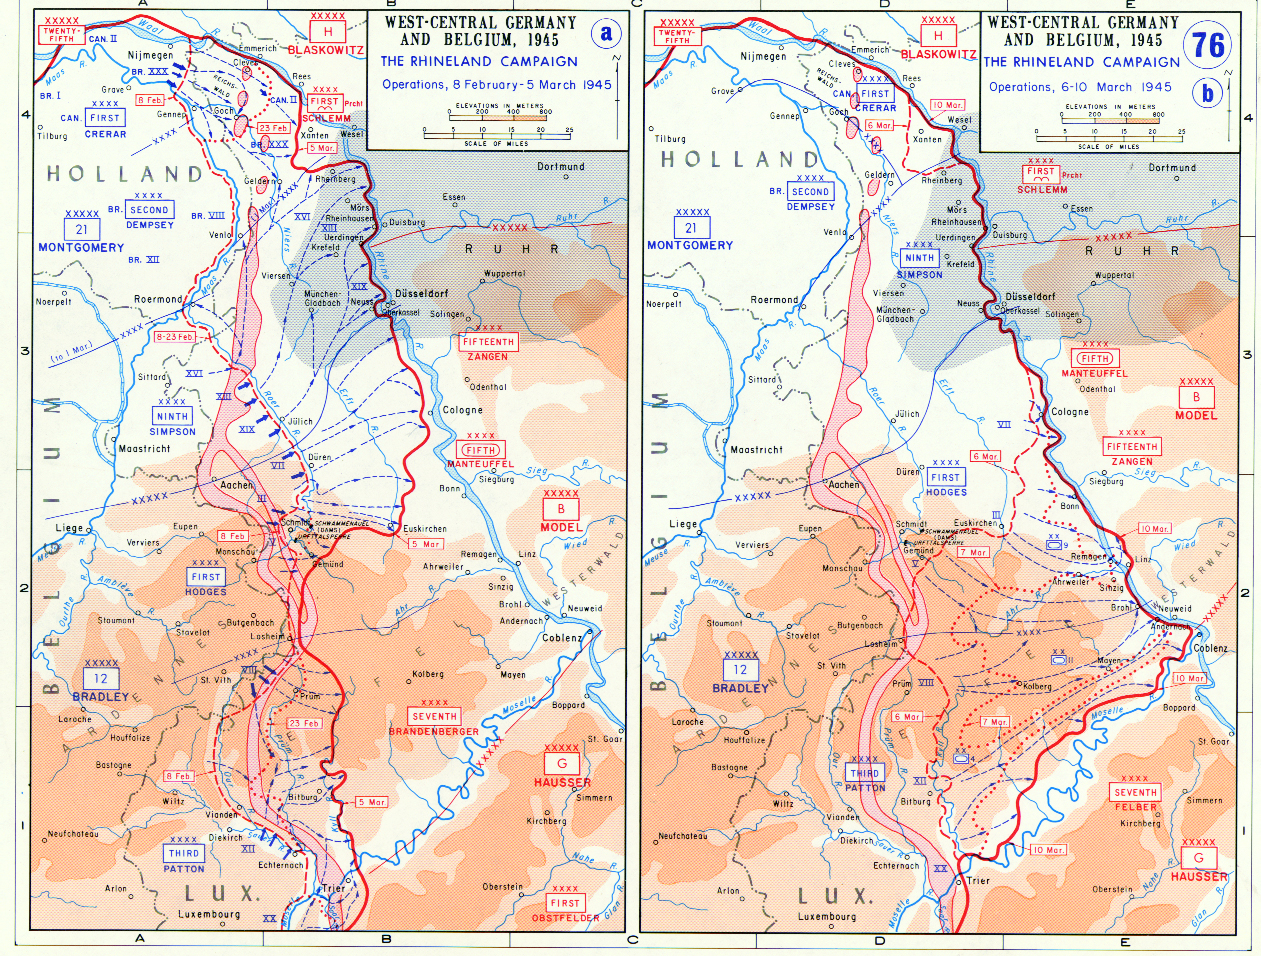 Map Of The Rhineland Campaign In West Germany And Belgium - Germany map 1945